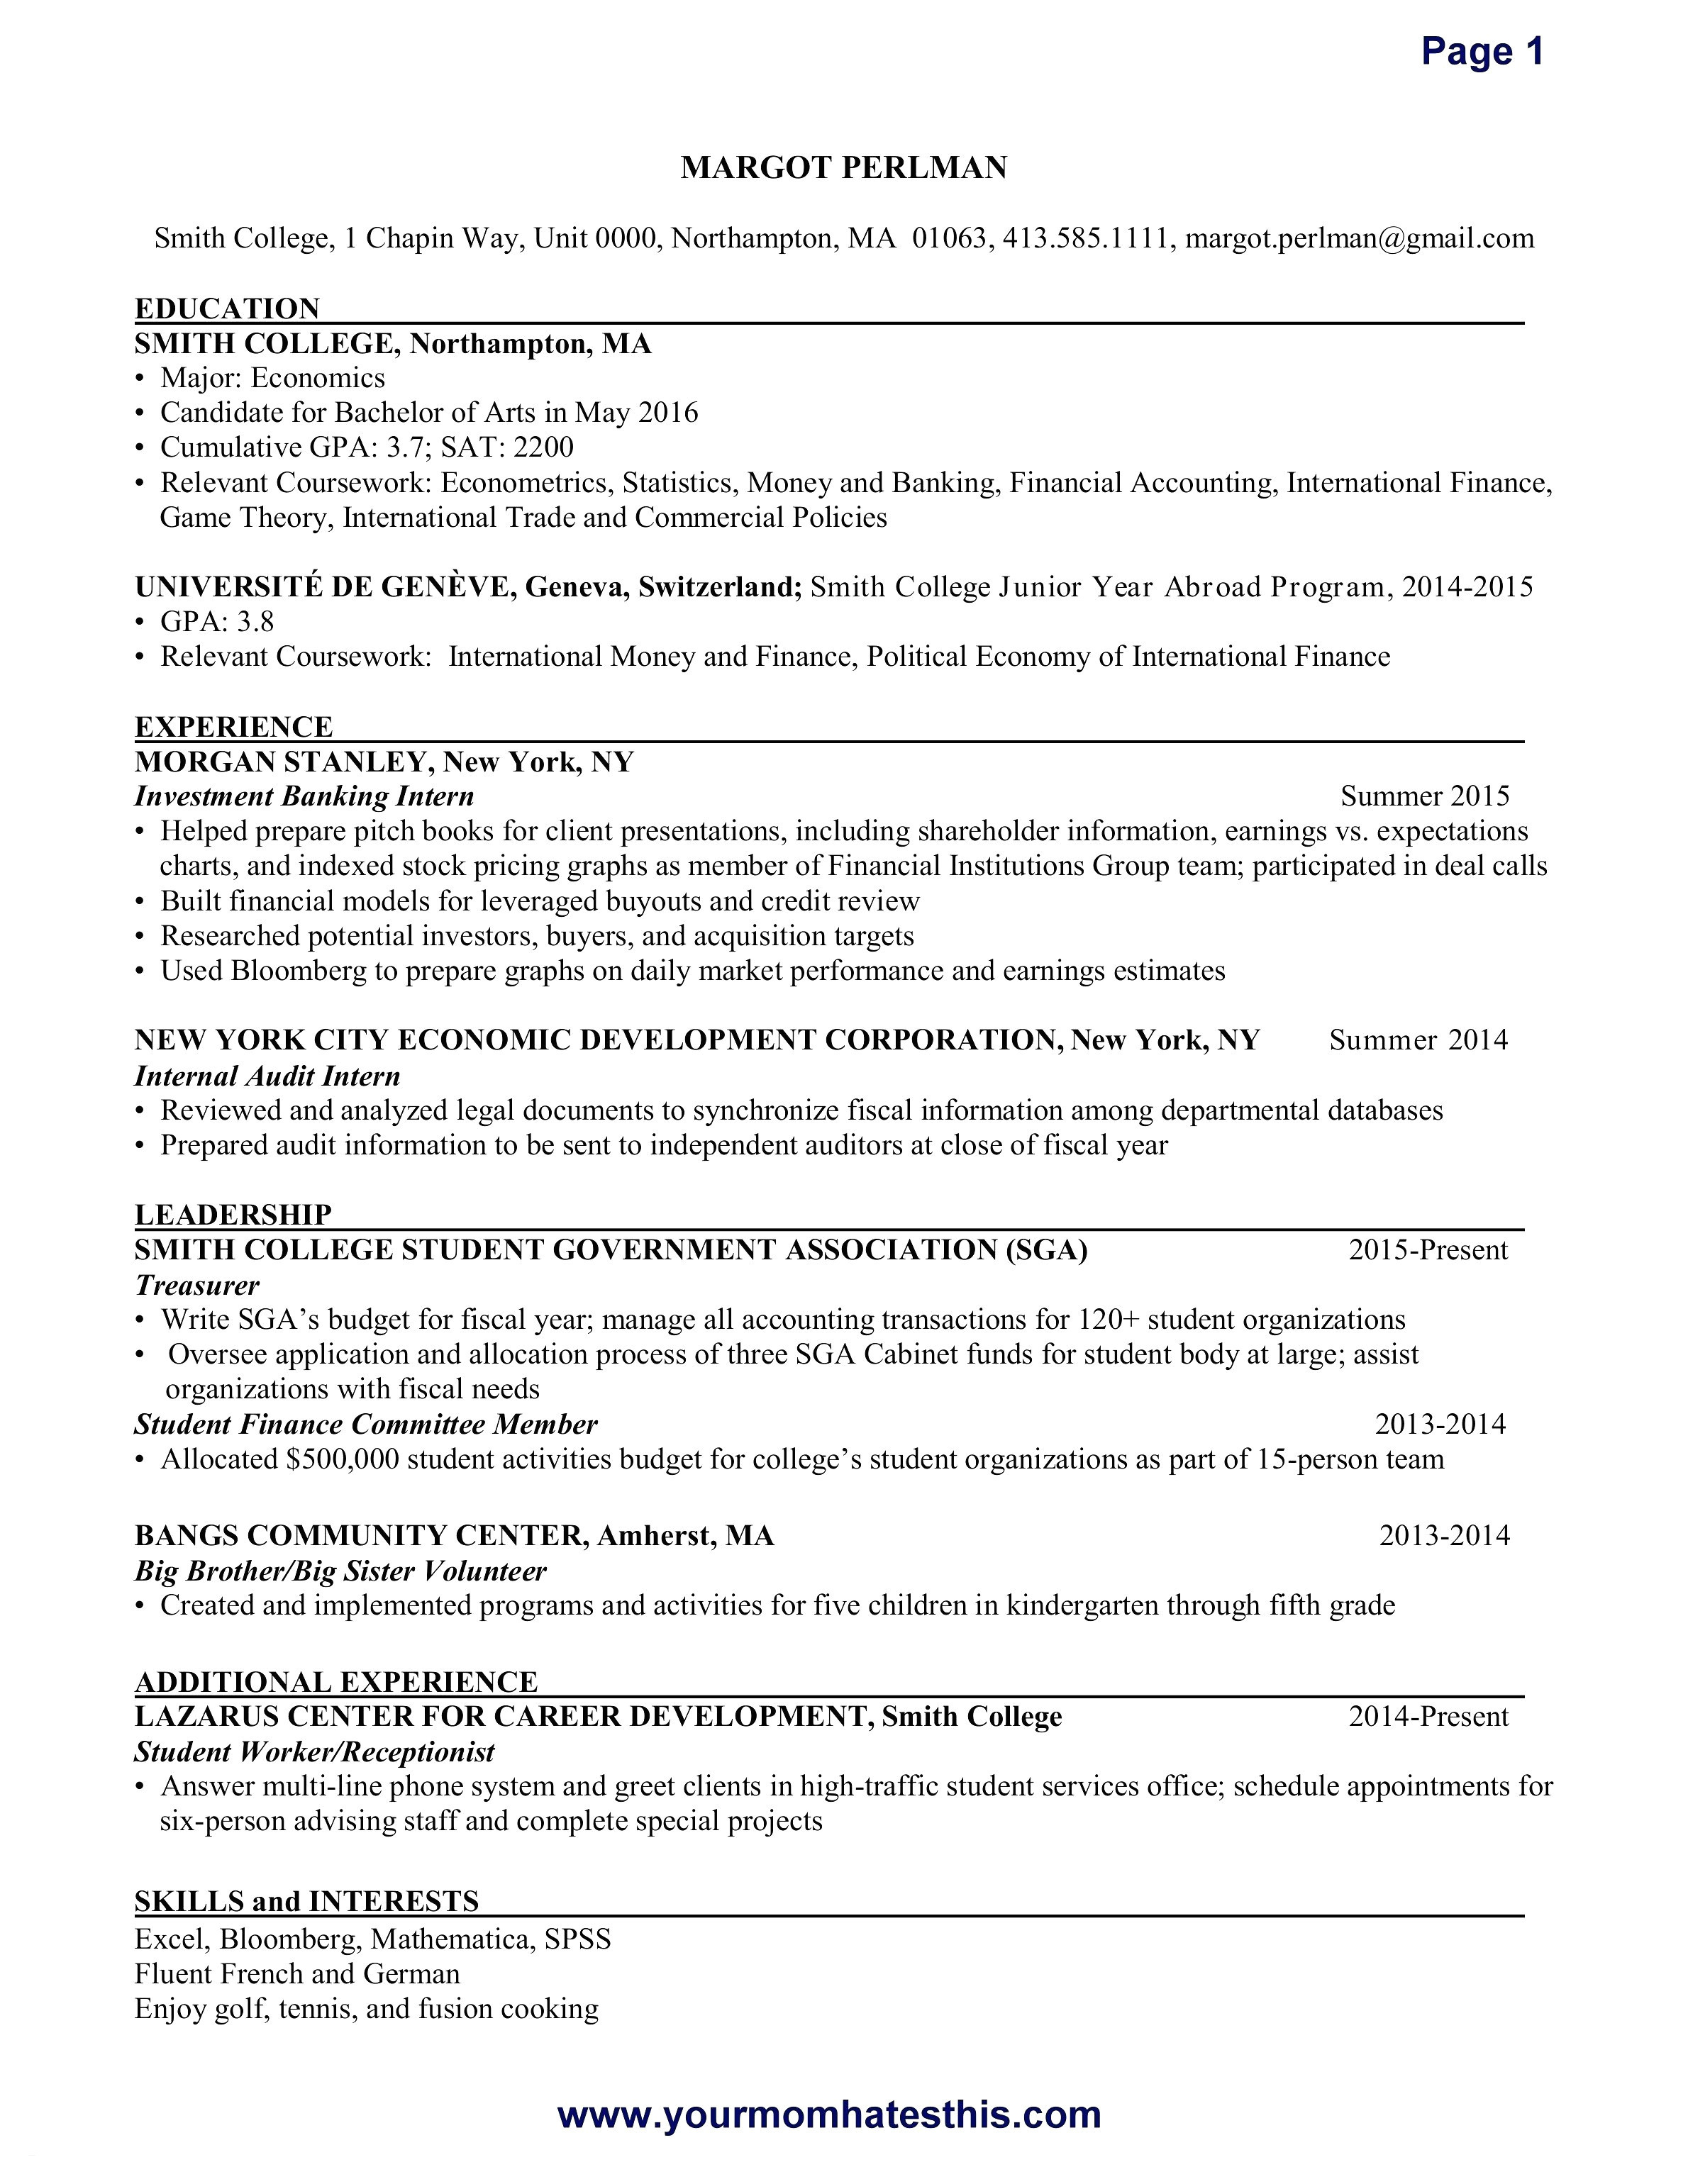 10 security guard resume template samples